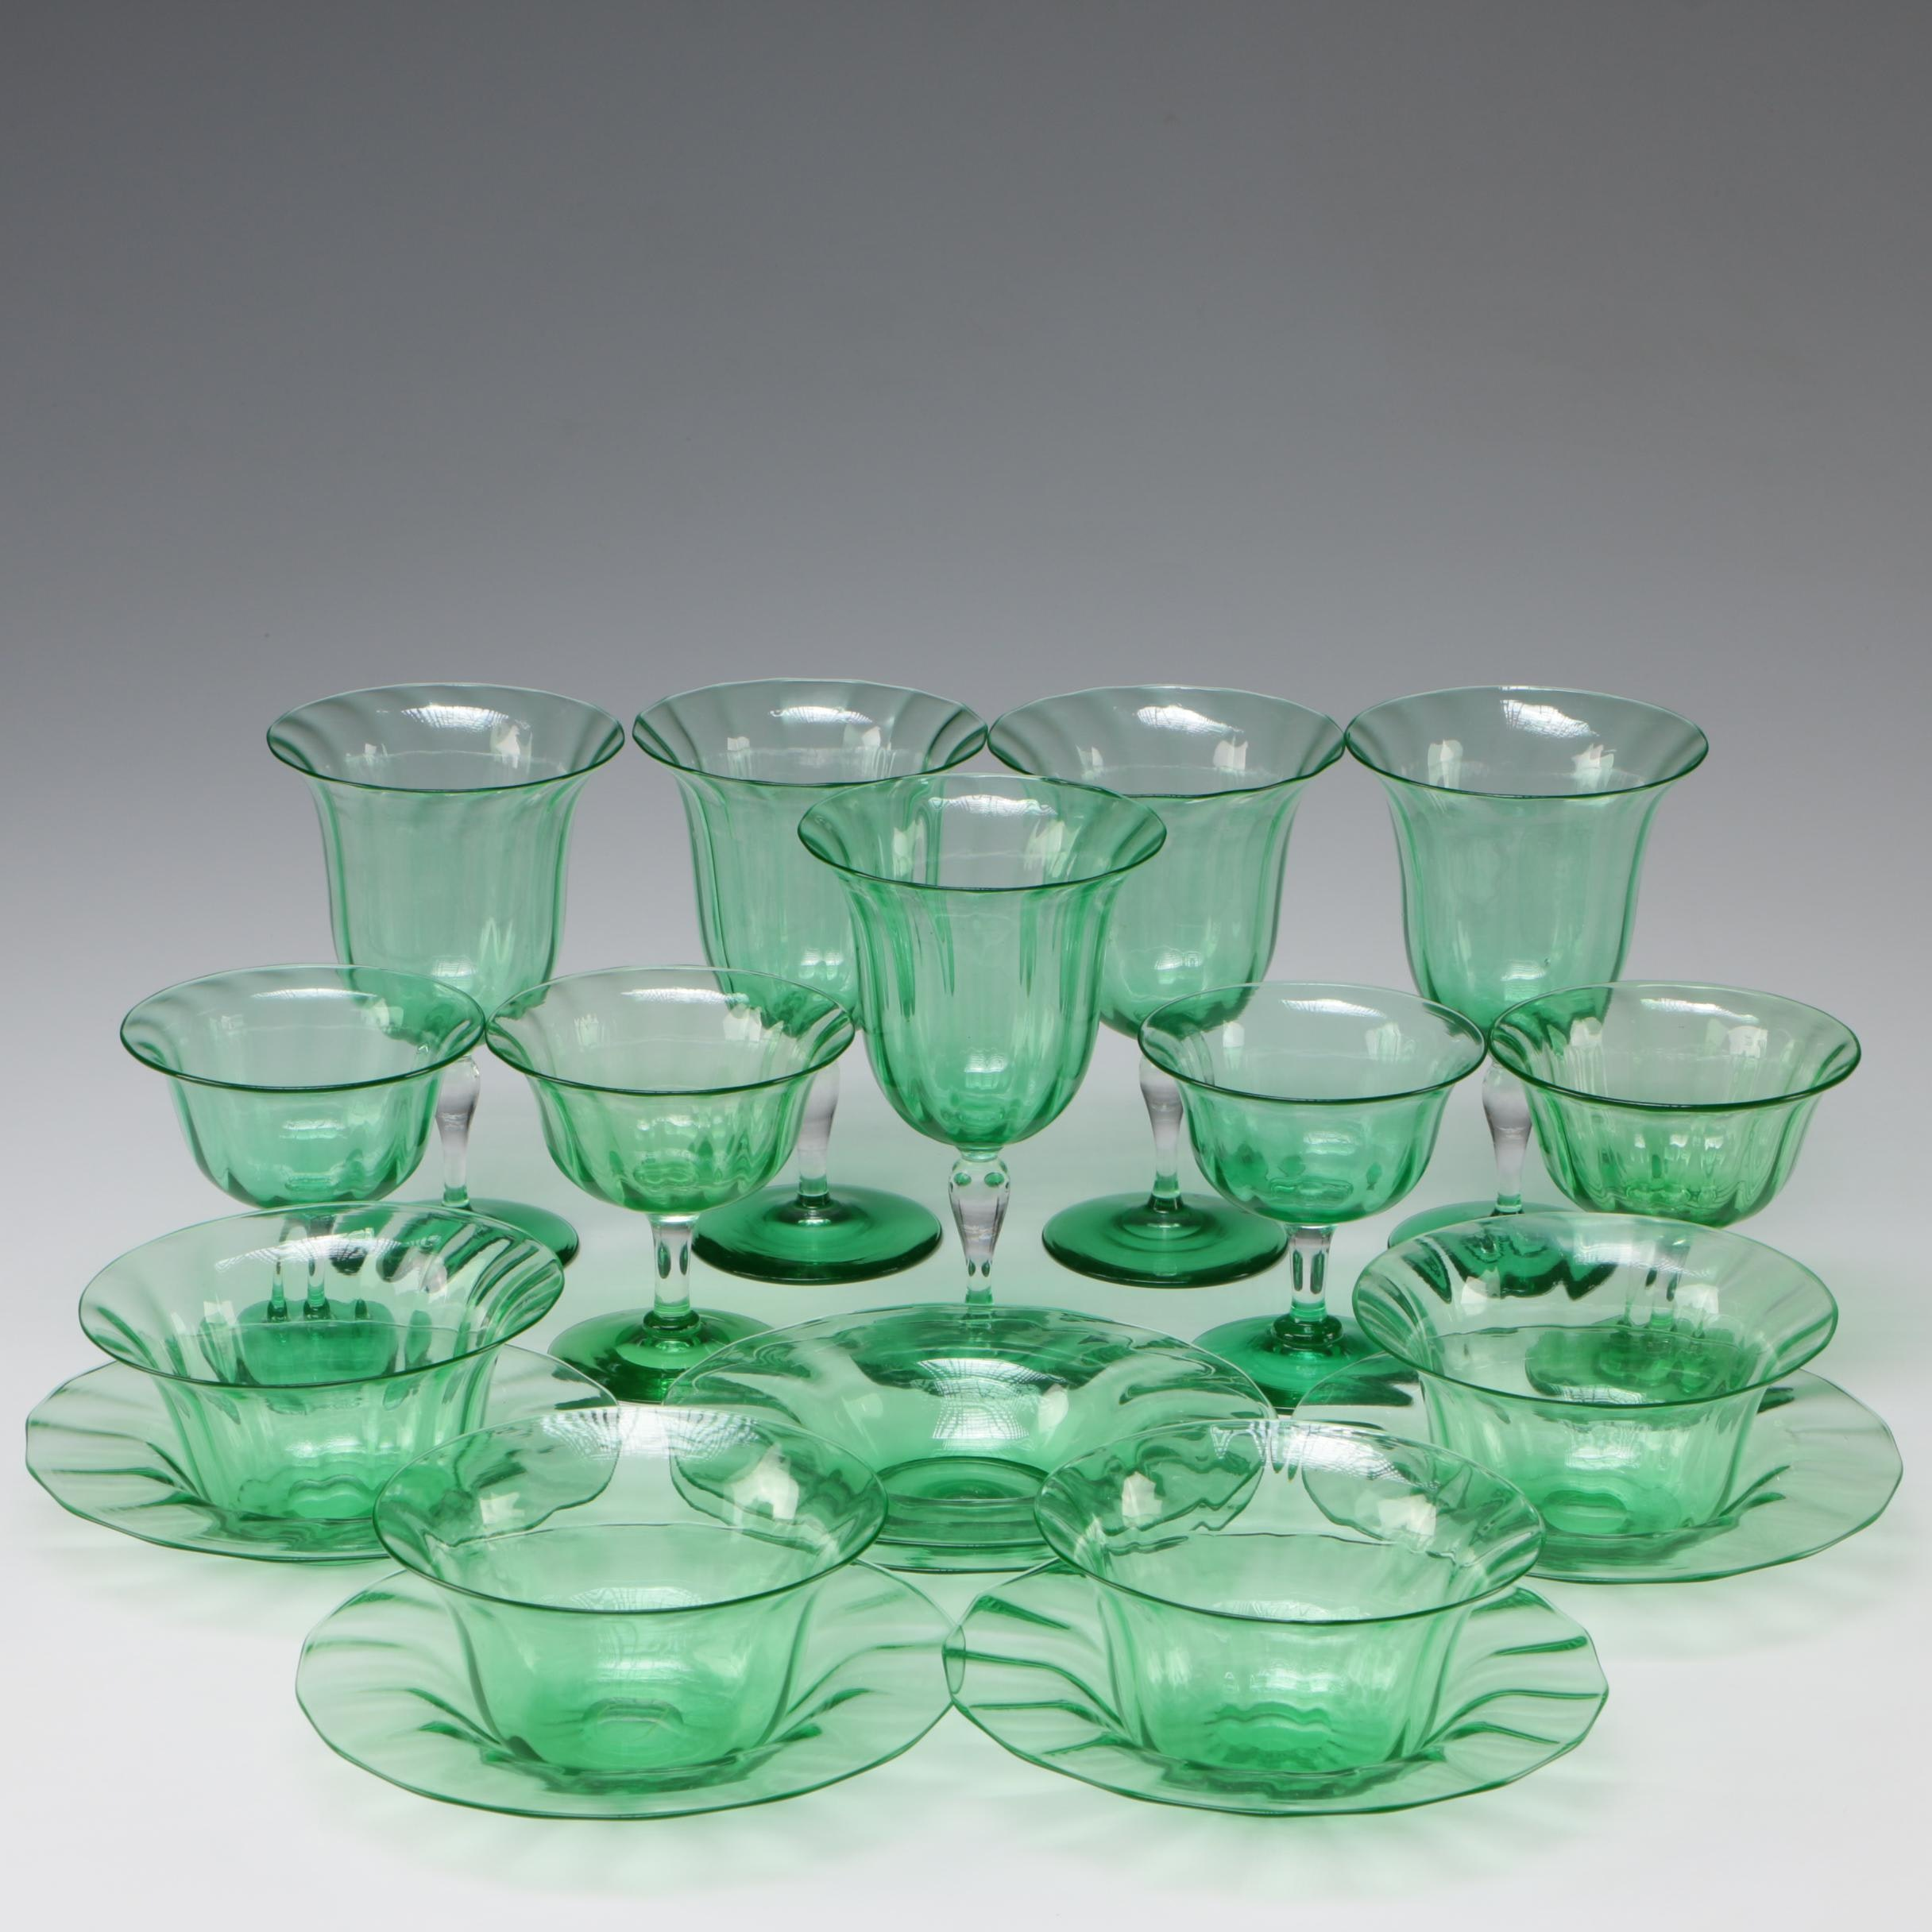 Steuben Pomona Sherbets with Underplates, Goblets, and Finger Bowls, 1903 - 1933